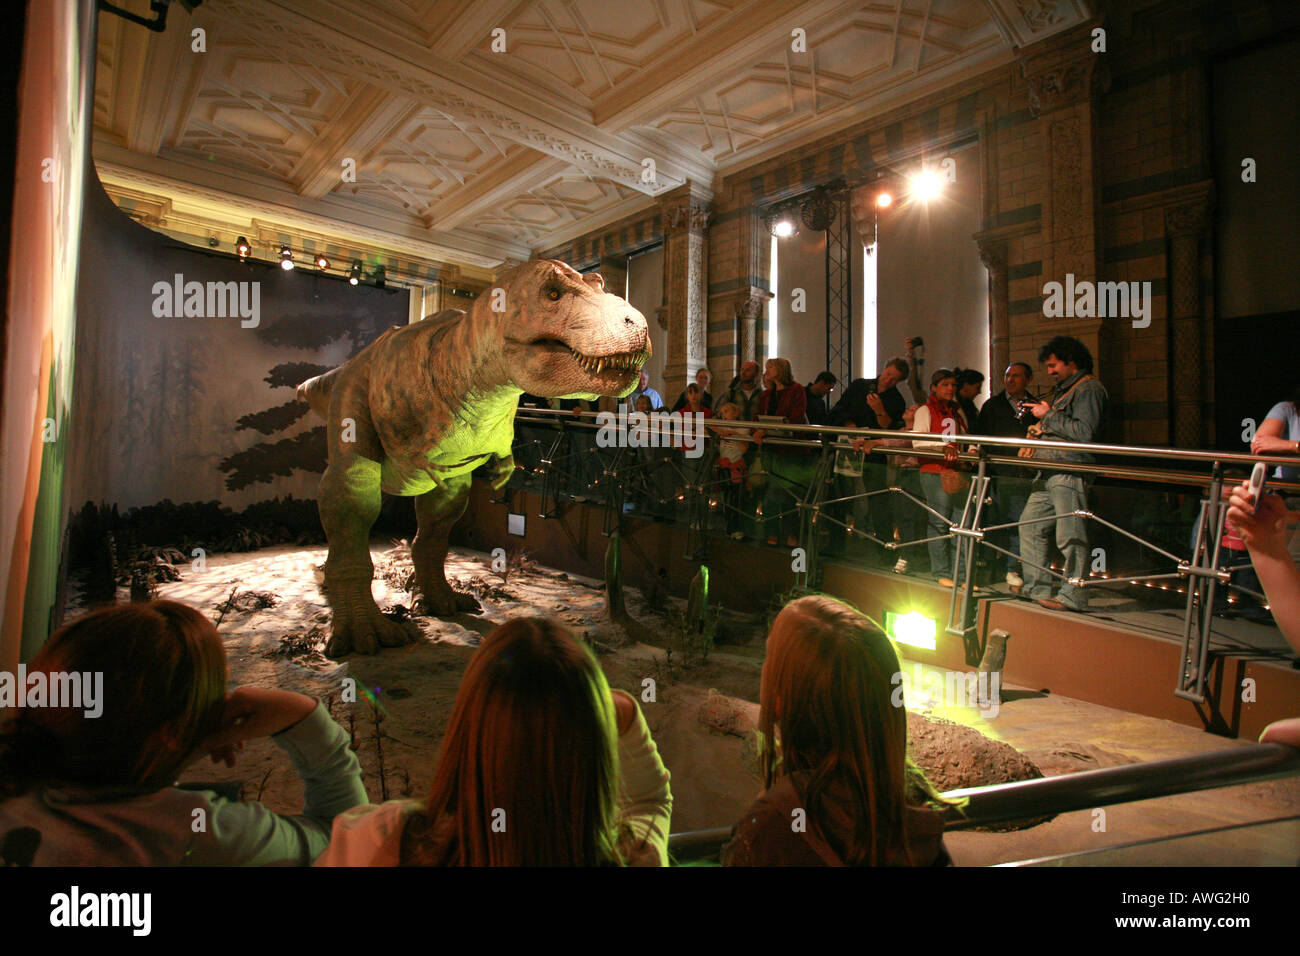 Tourists visit the popular Tyrannosaurus Rex T Rex dinosaur exhibition at the world famous Natural History Museum London England - Stock Image